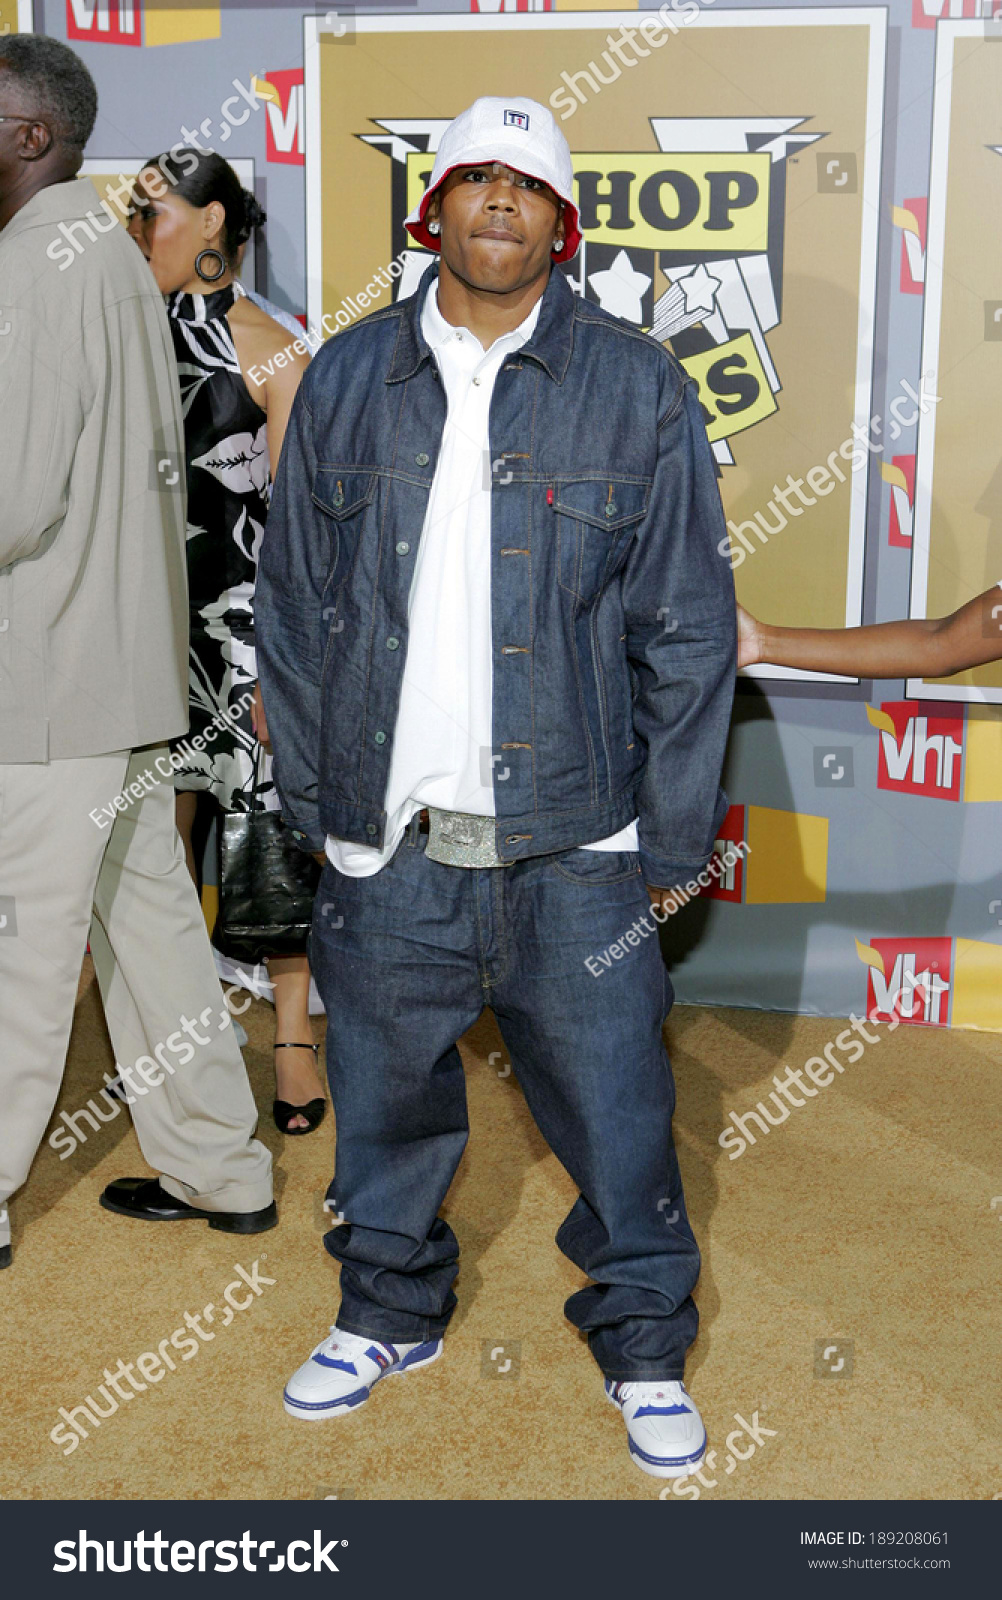 VH1 Awards: Hip Hop Honors2009 VH1 Awards: Hip Hop Honors2009 new pictures